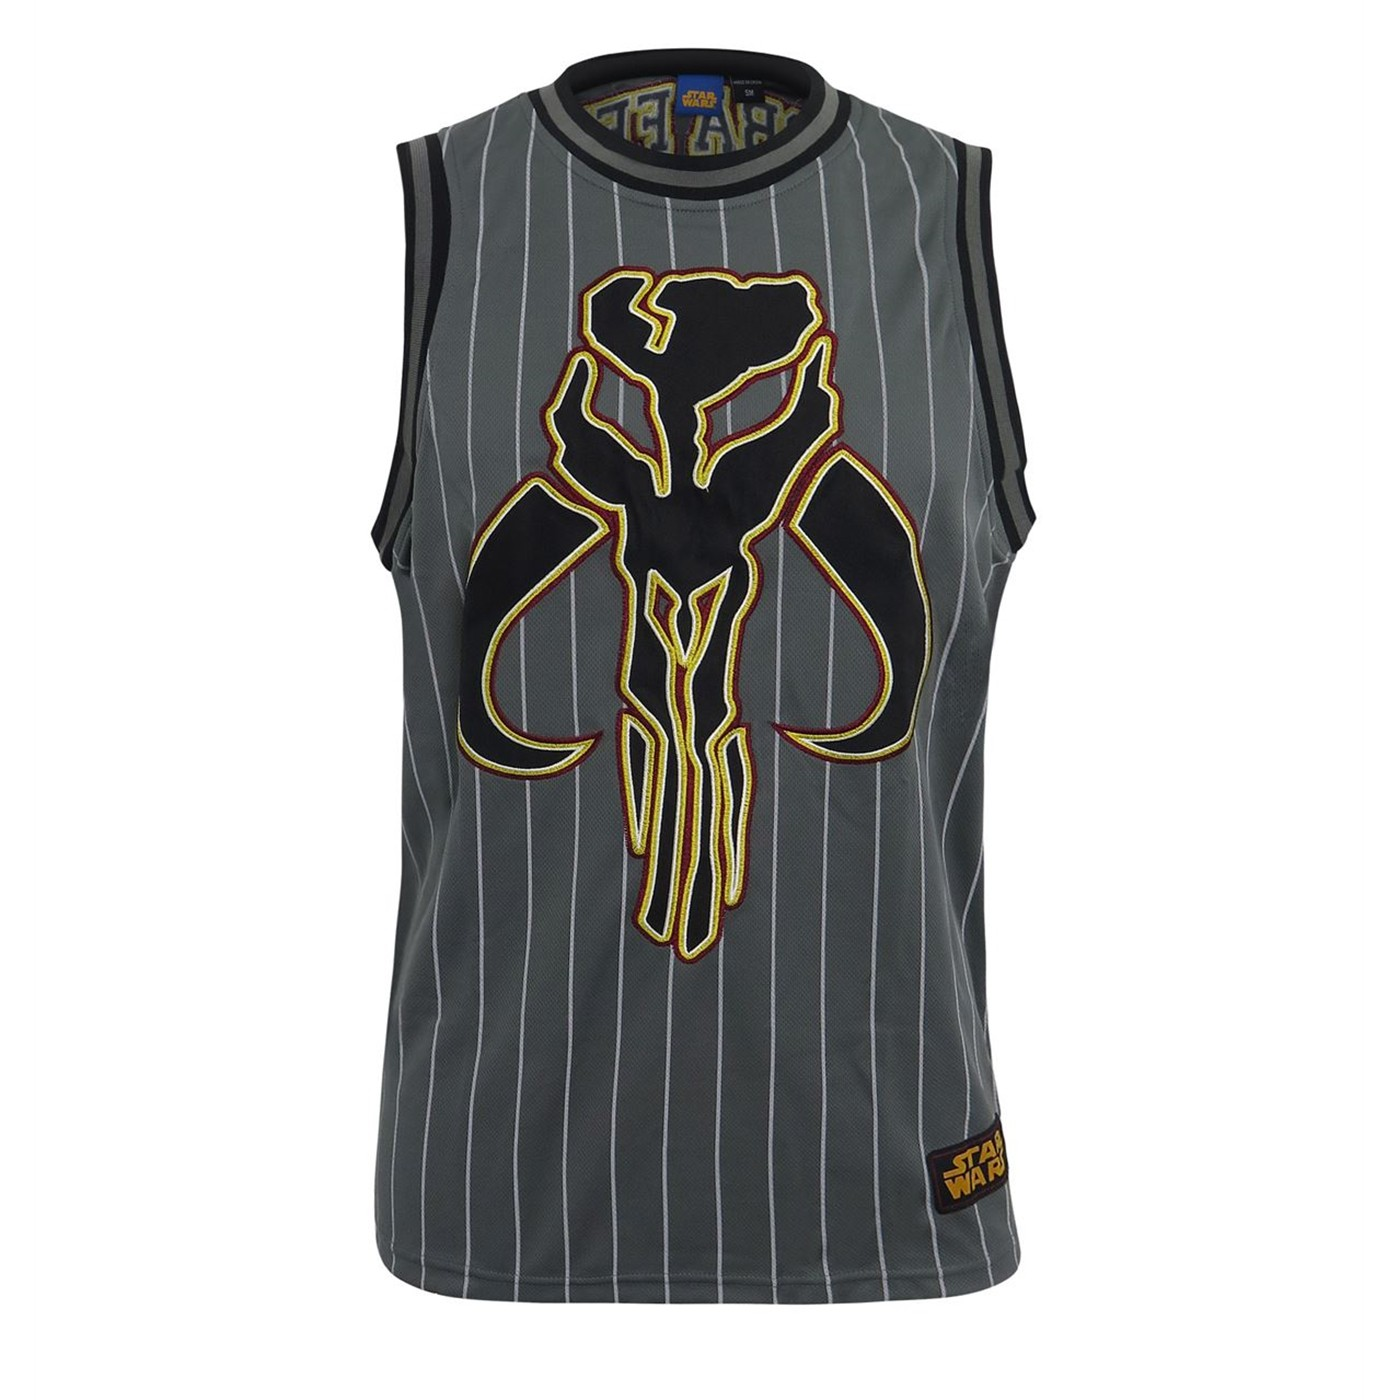 Star Wars Fett Embroidered Basketball Jersey